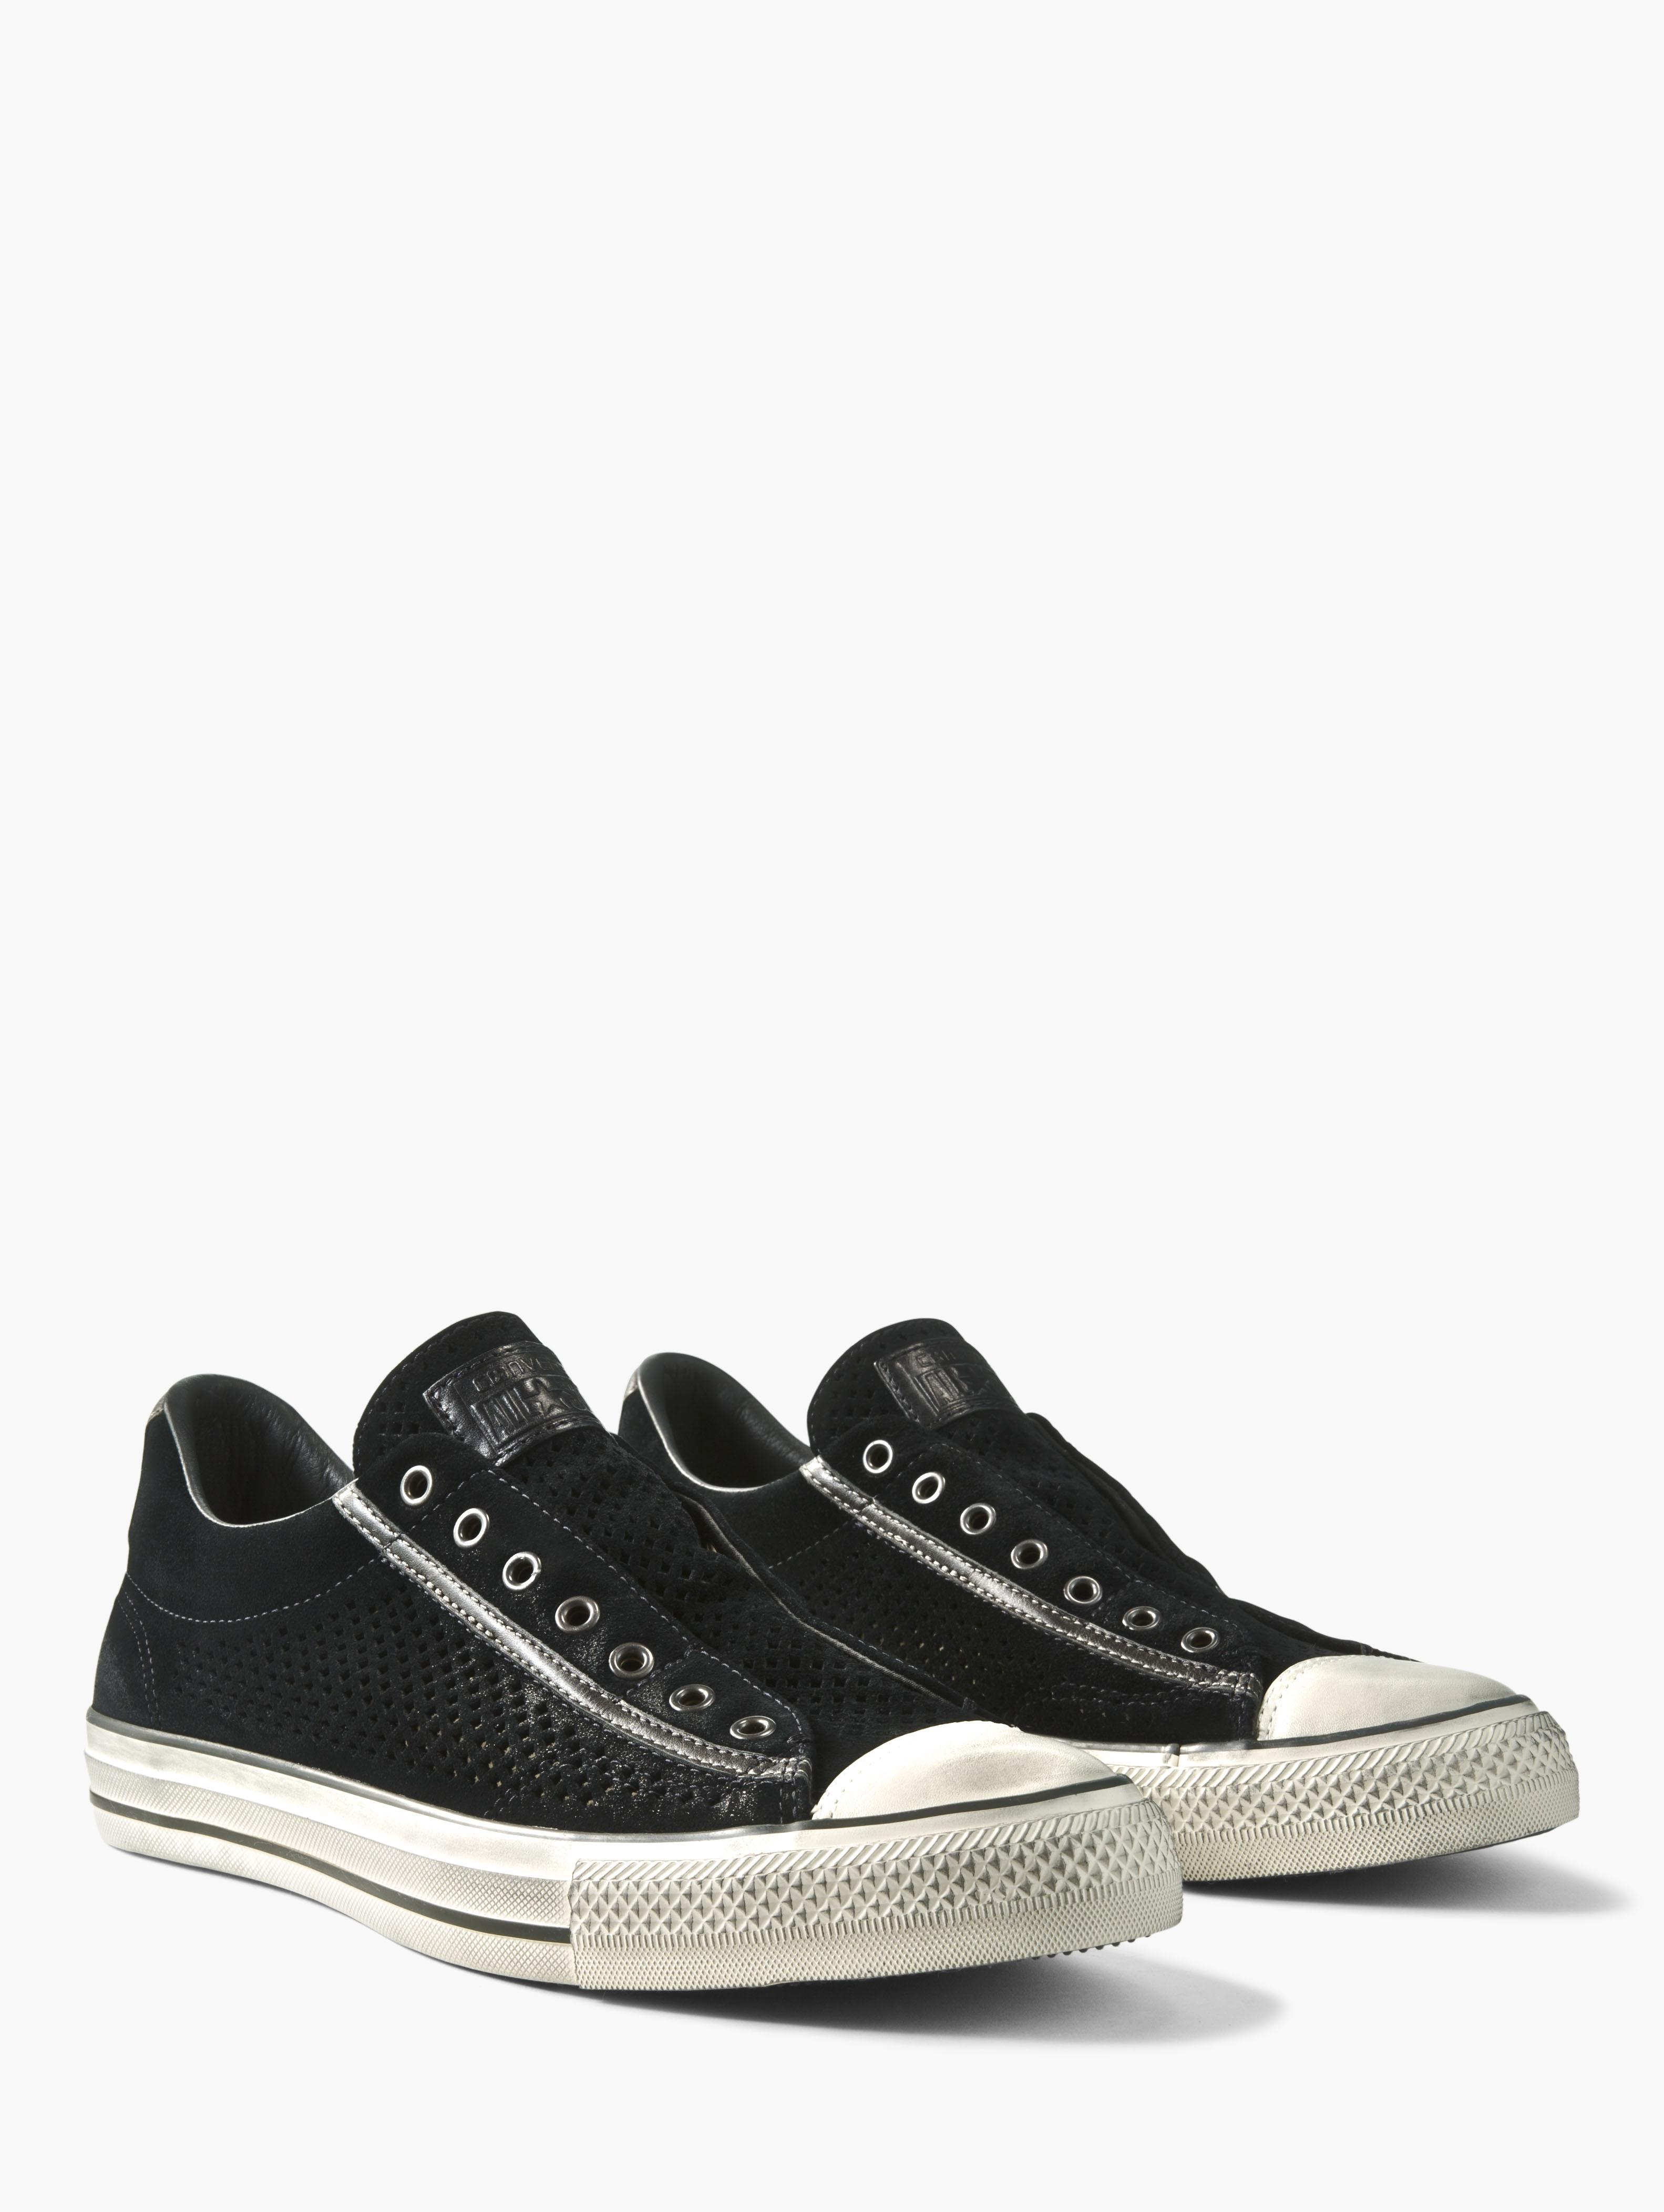 Chuck II Vintage Suede Low Top